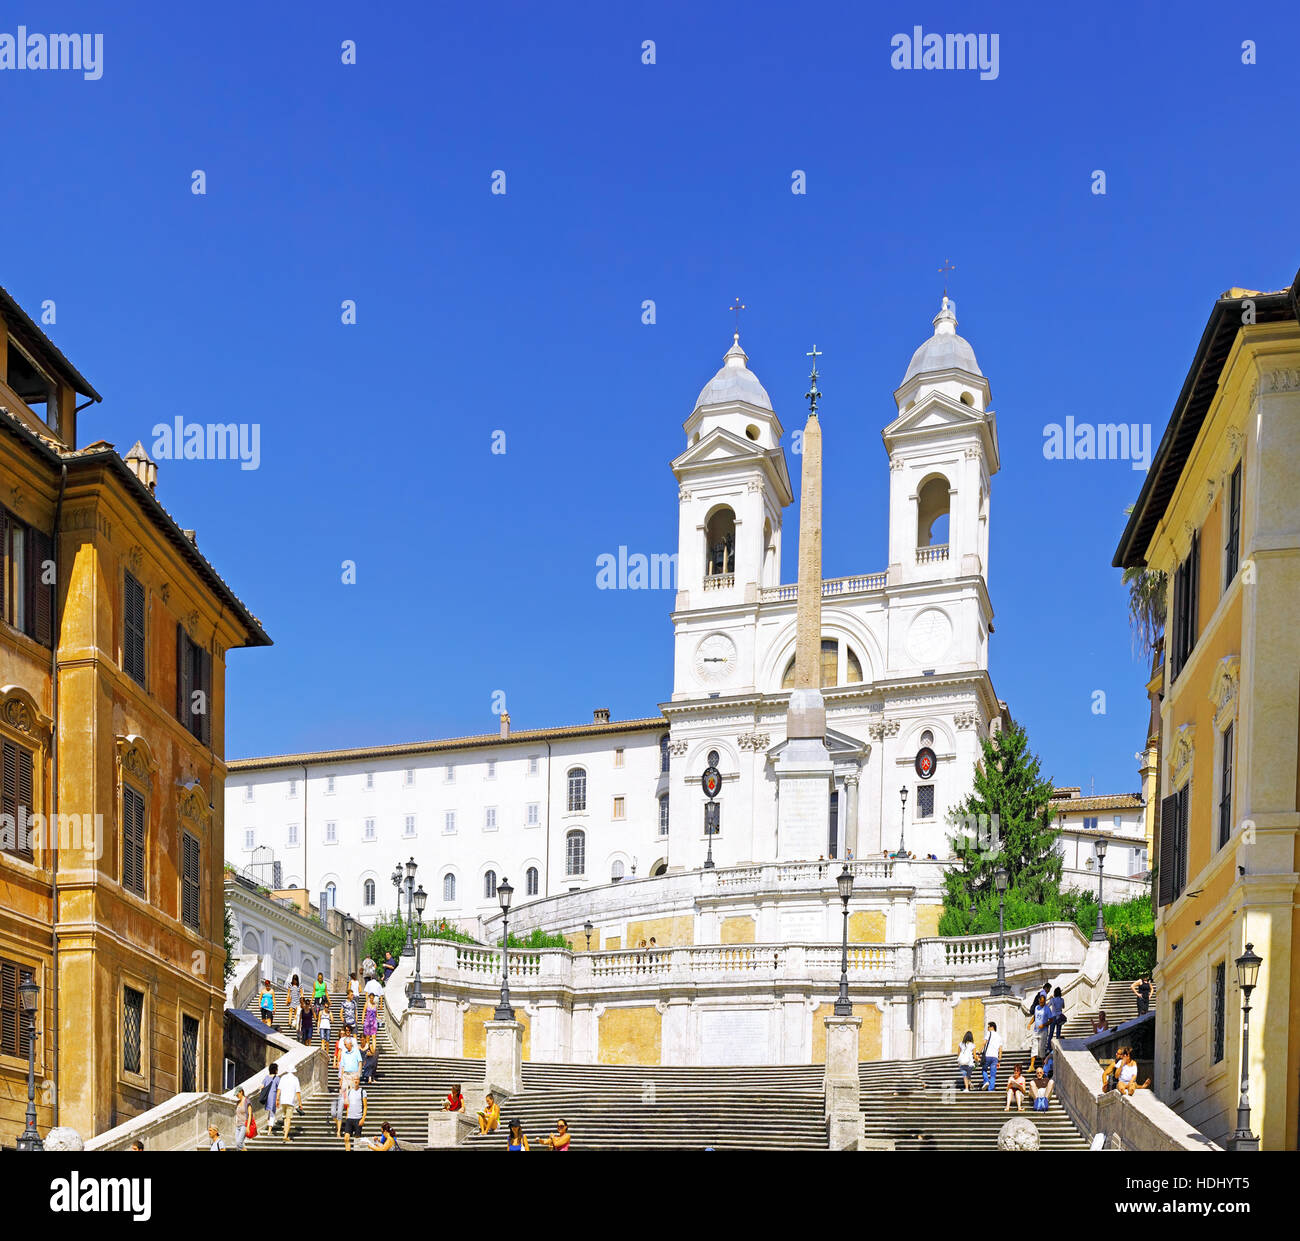 Spain's Square and Church of the Holy Trinity in Rome while on vacation in Rome, Italy Stock Photo